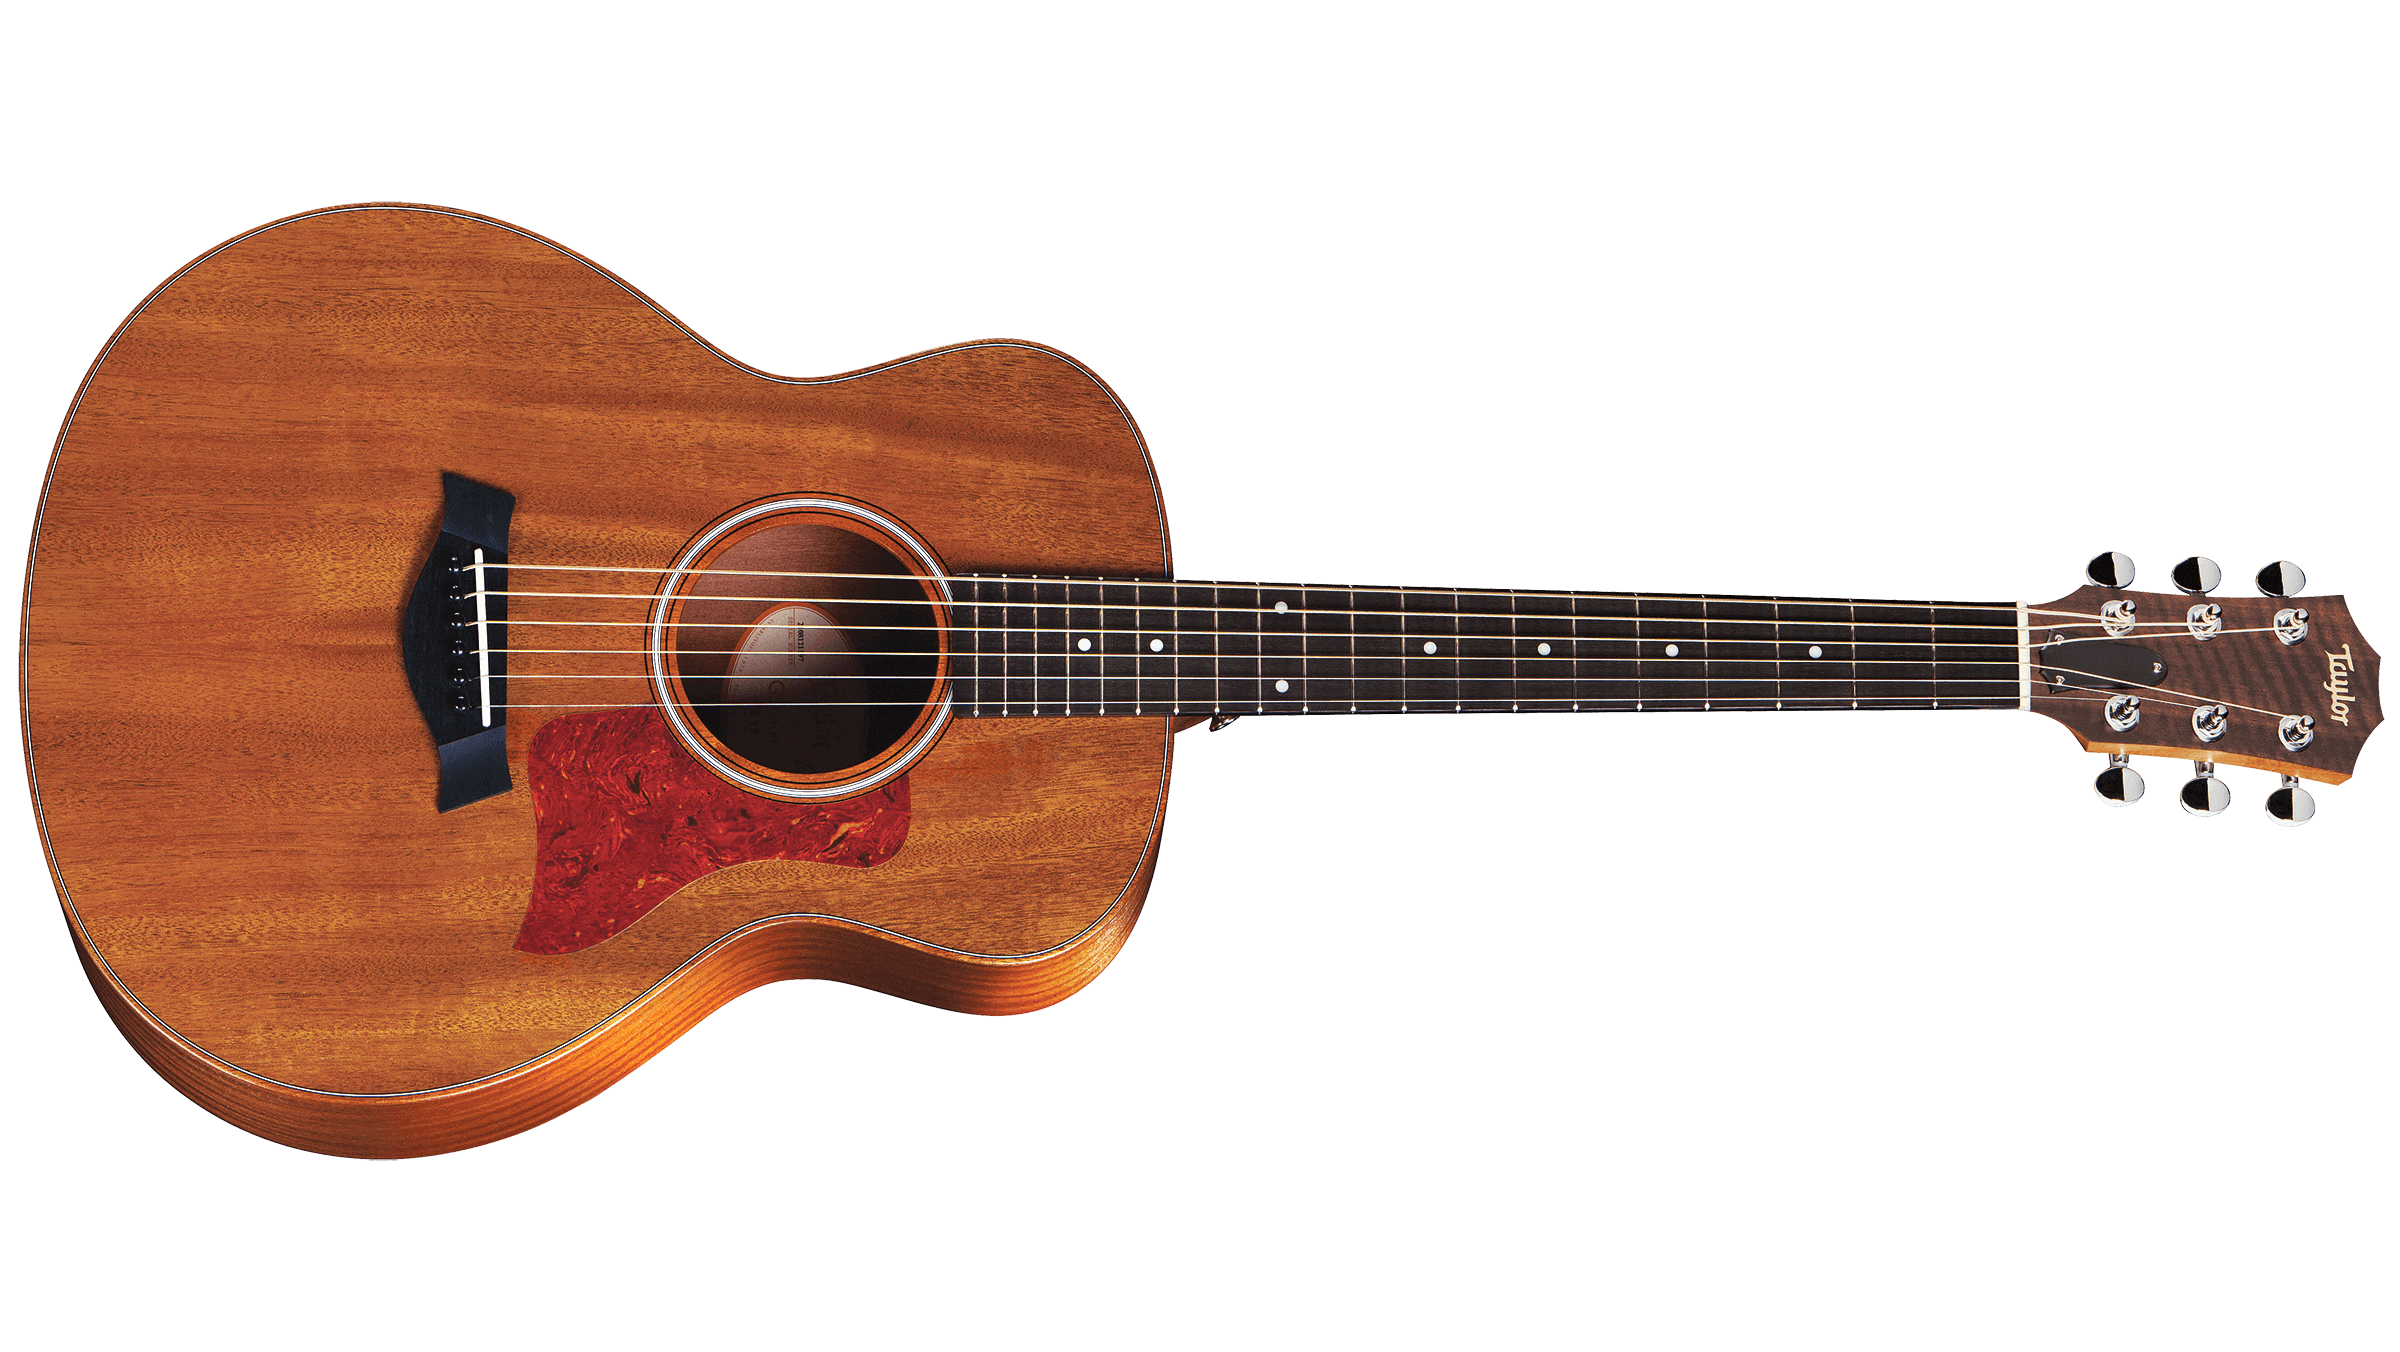 Taylor gs mini Best Cheap Acoustic Guitar for Beginners